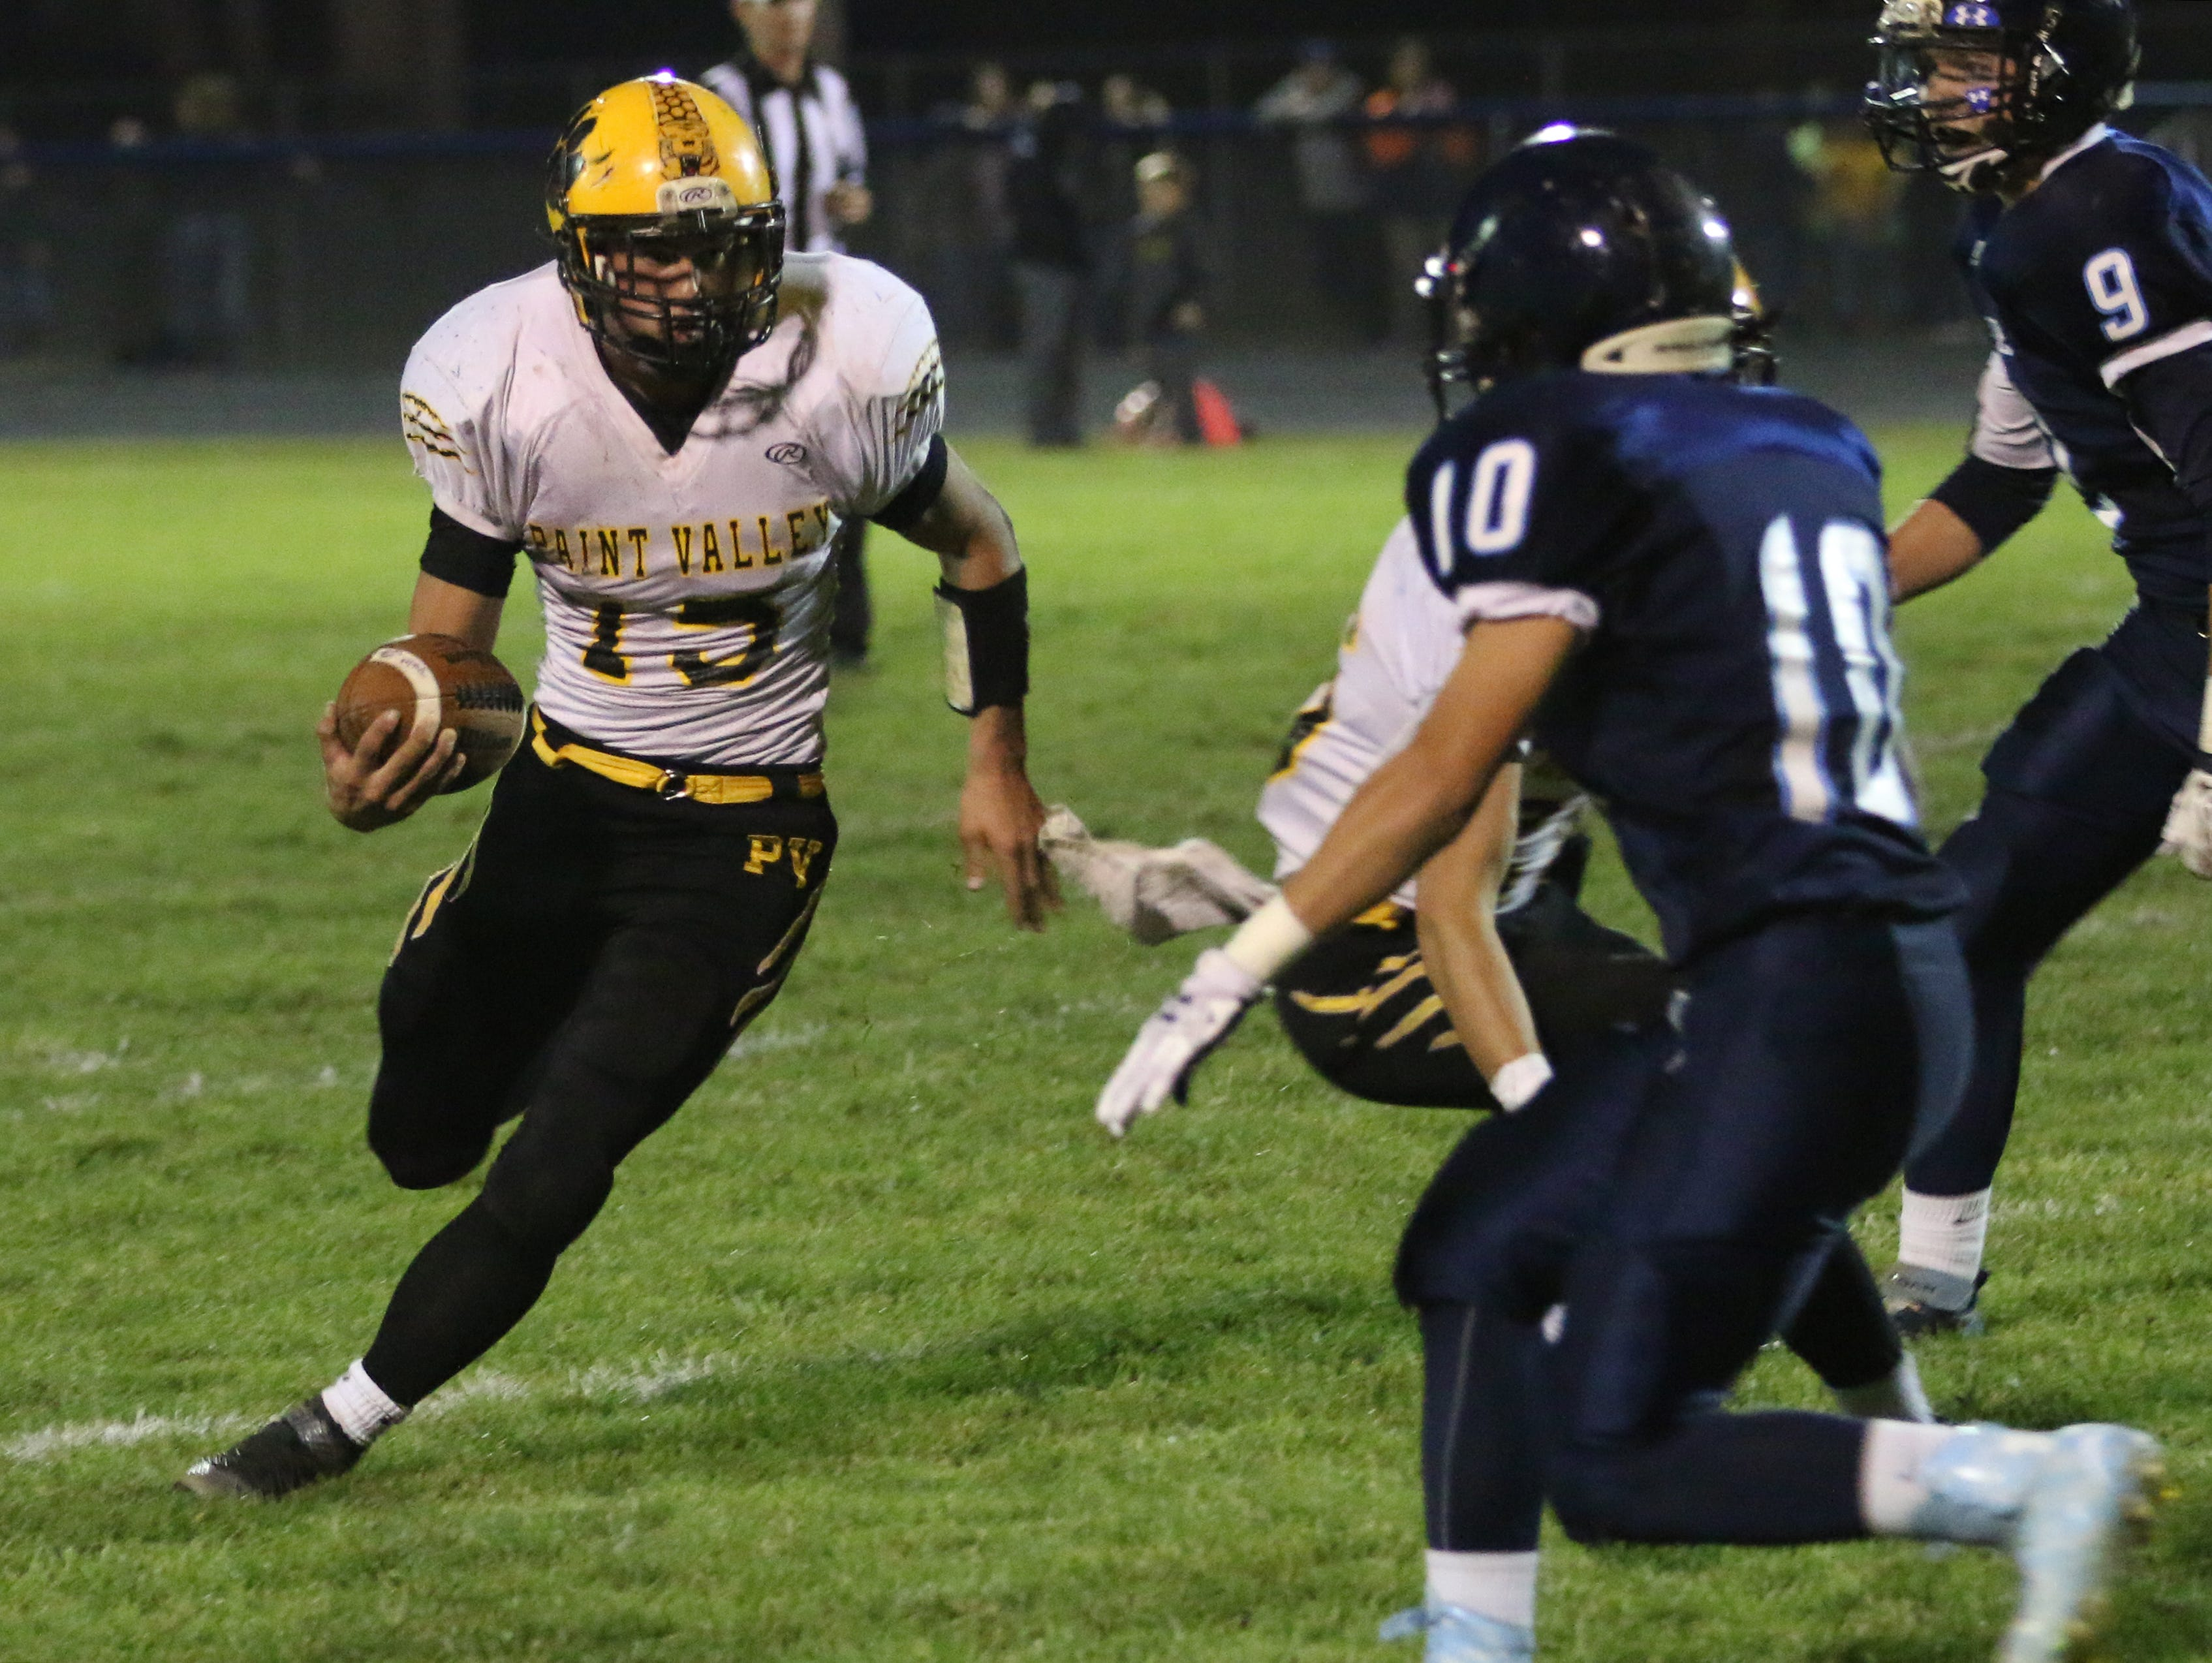 Paint Valley's Drake Stanforth runs the ball Friday, Oct. 23, 2015, at Adena High School.